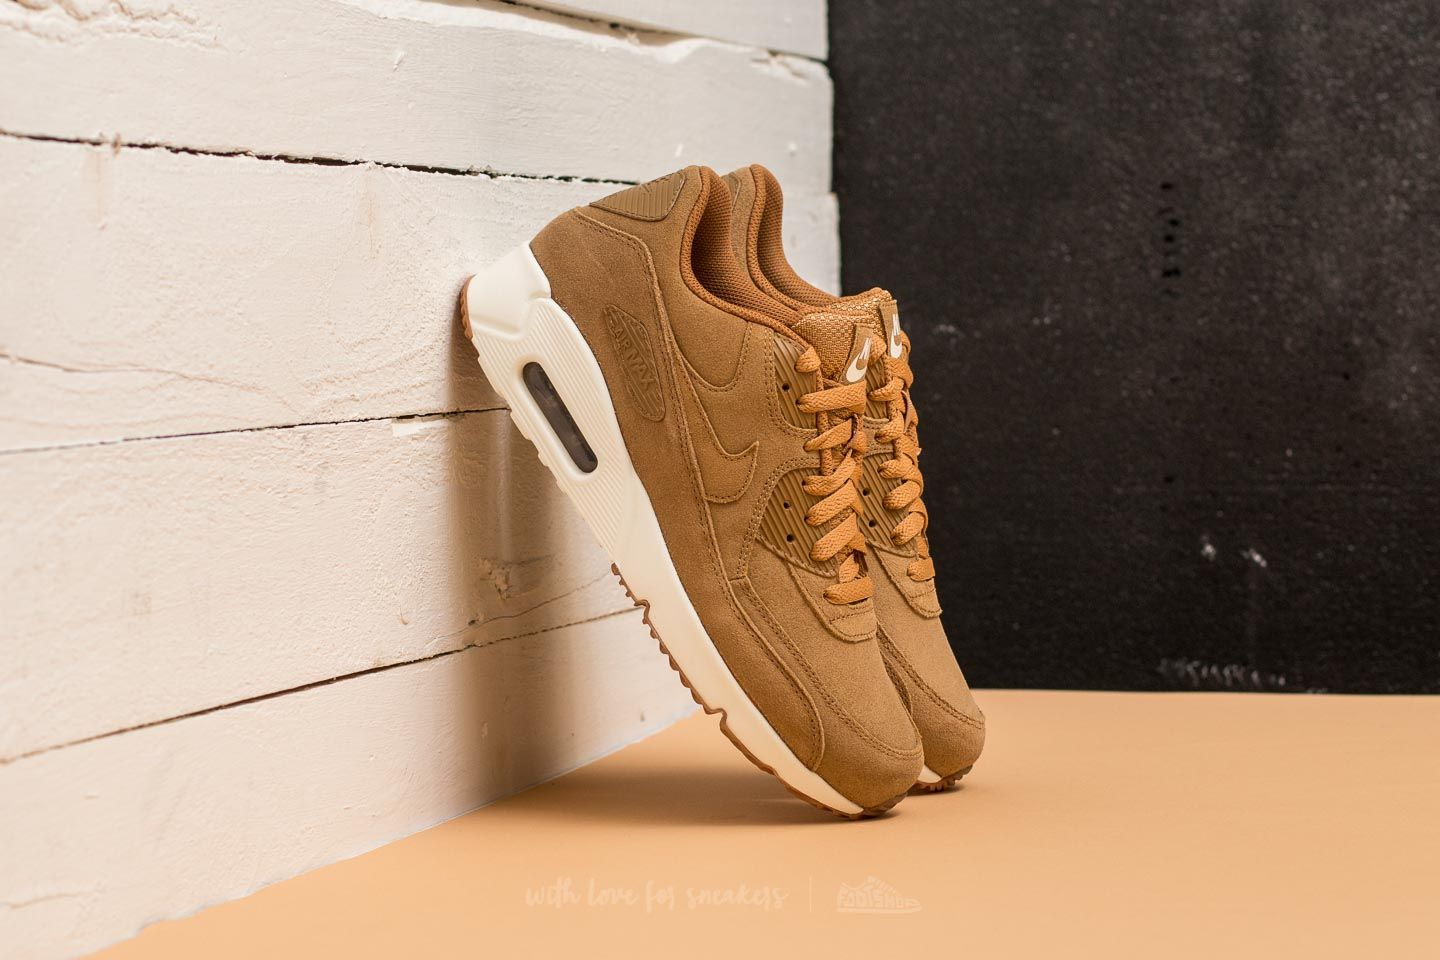 332aef9f835 Nike Air Max 90 Ultra 2.0 LTR Flax  Flax-Sail-Gum Med Brown ...